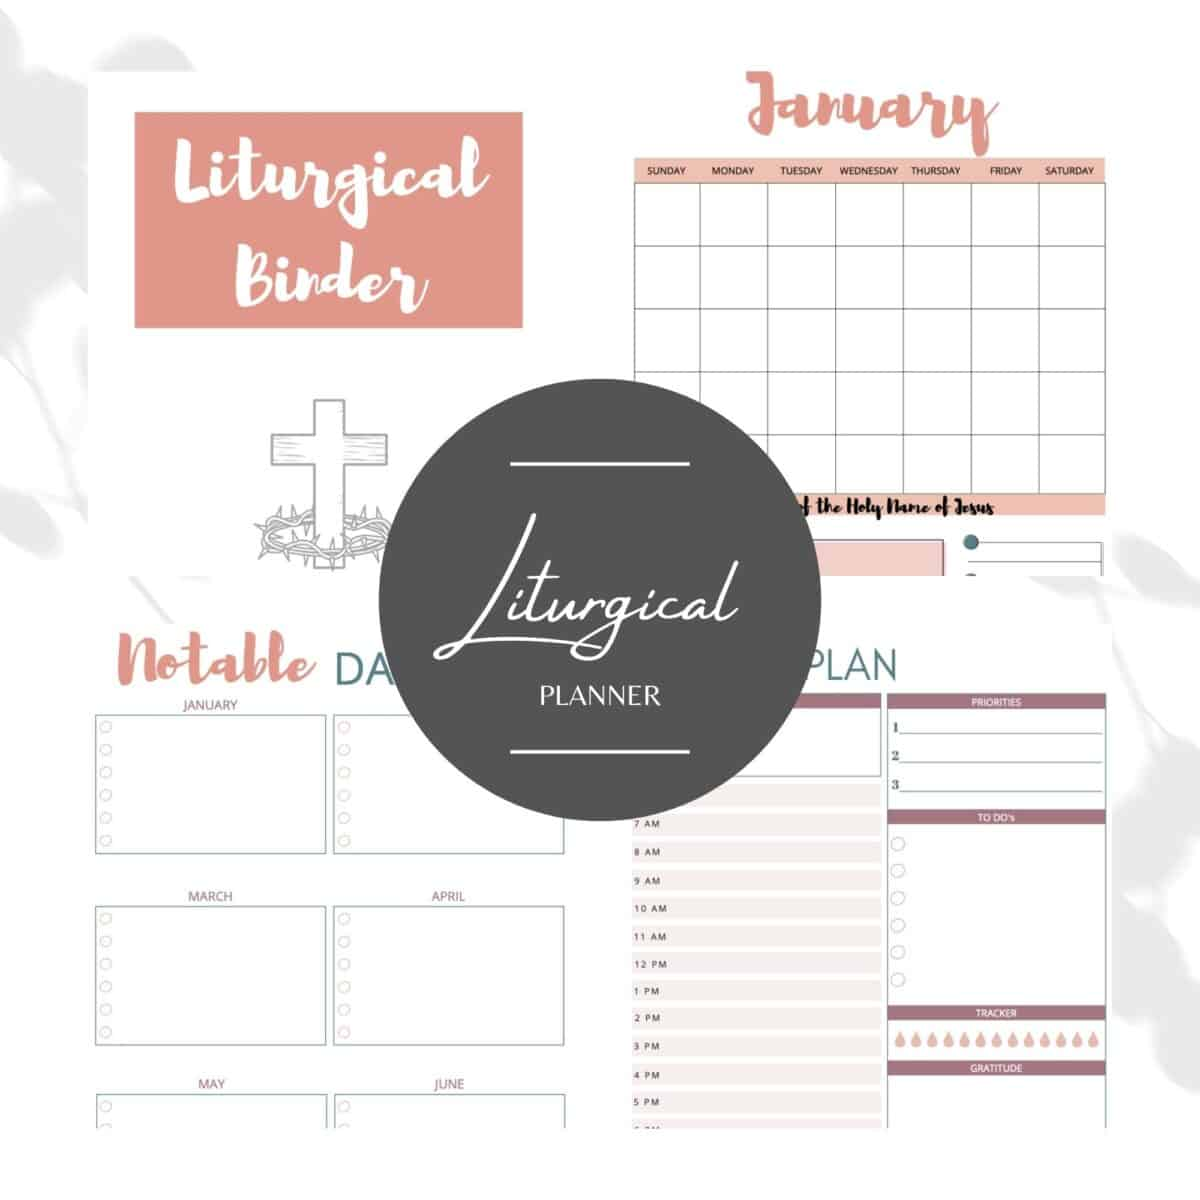 collage of liturgical binder planner sheets